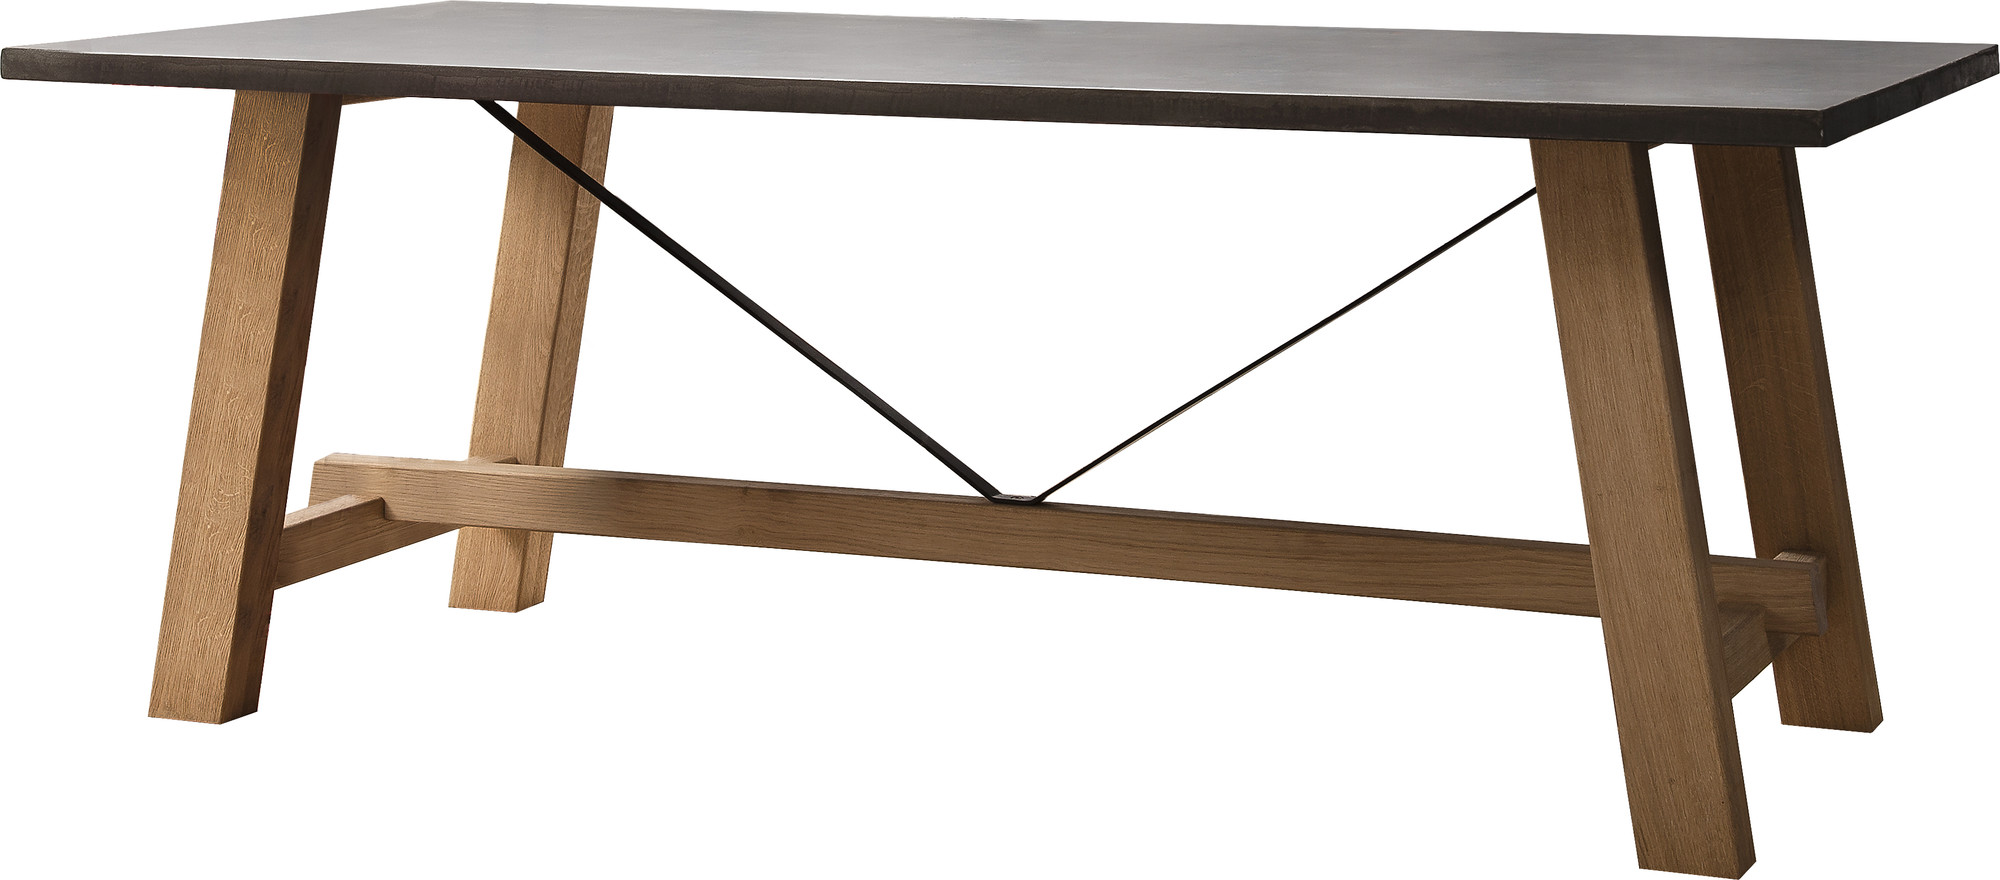 New blenn trestle dining table ebay Trestle dining table